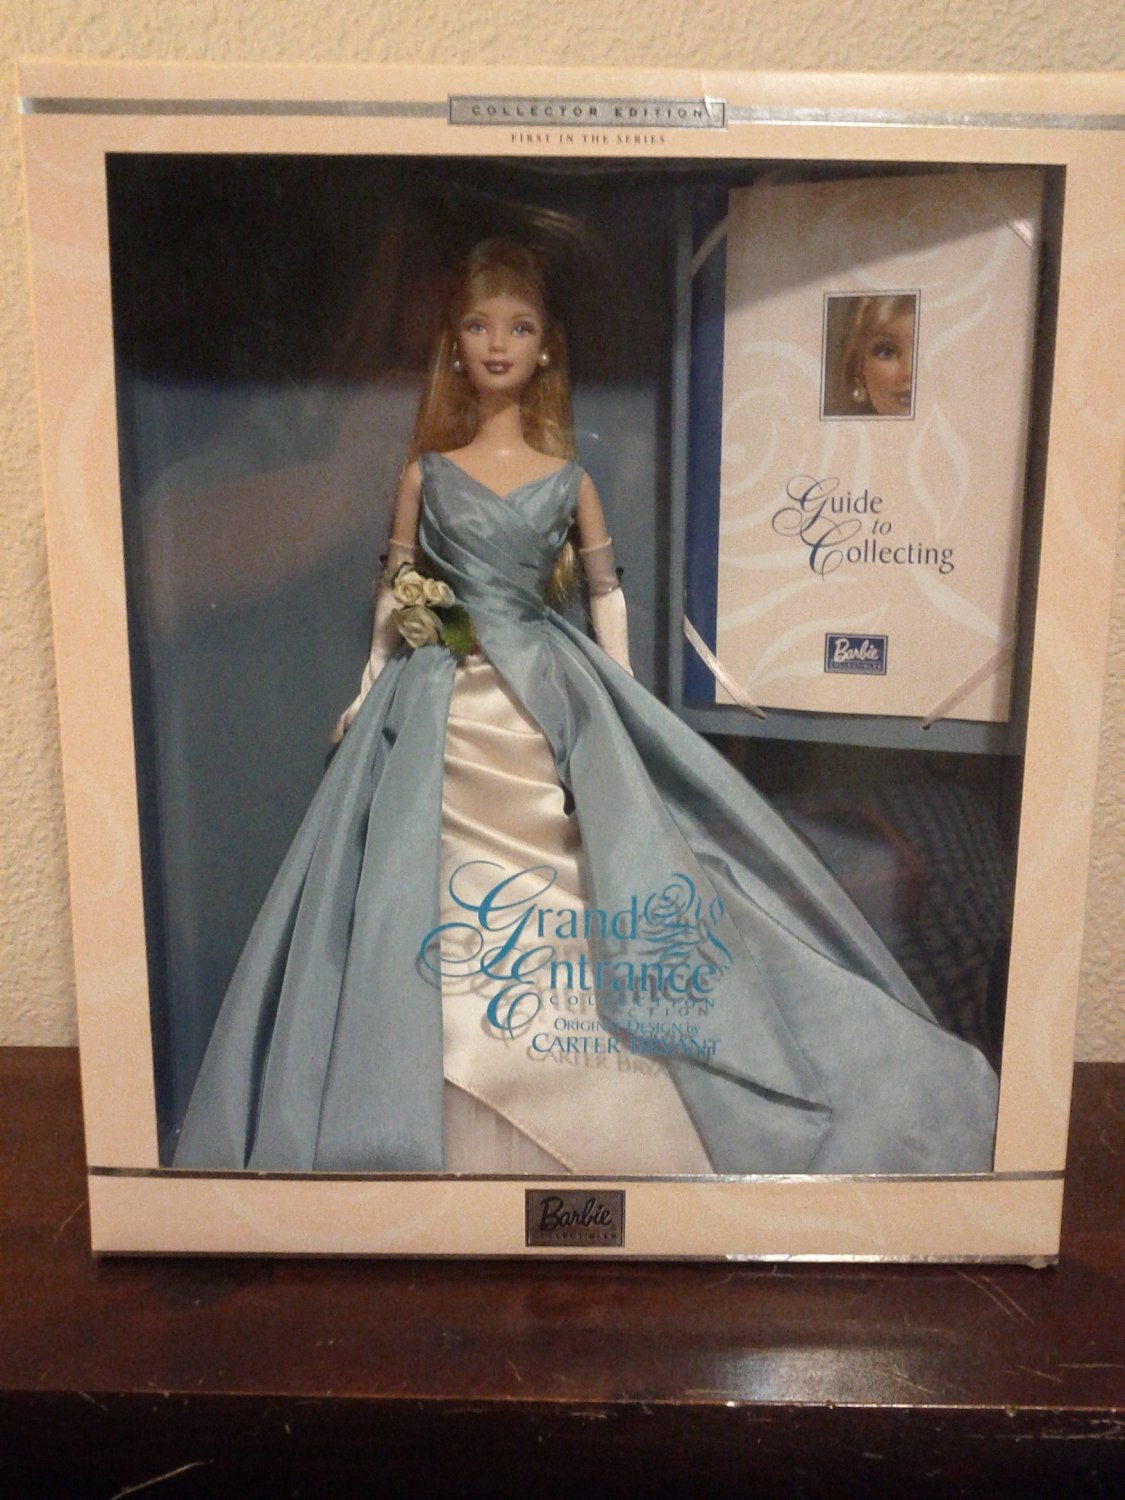 Grand Entrance Barbie by Carter Bryant Collector Edition